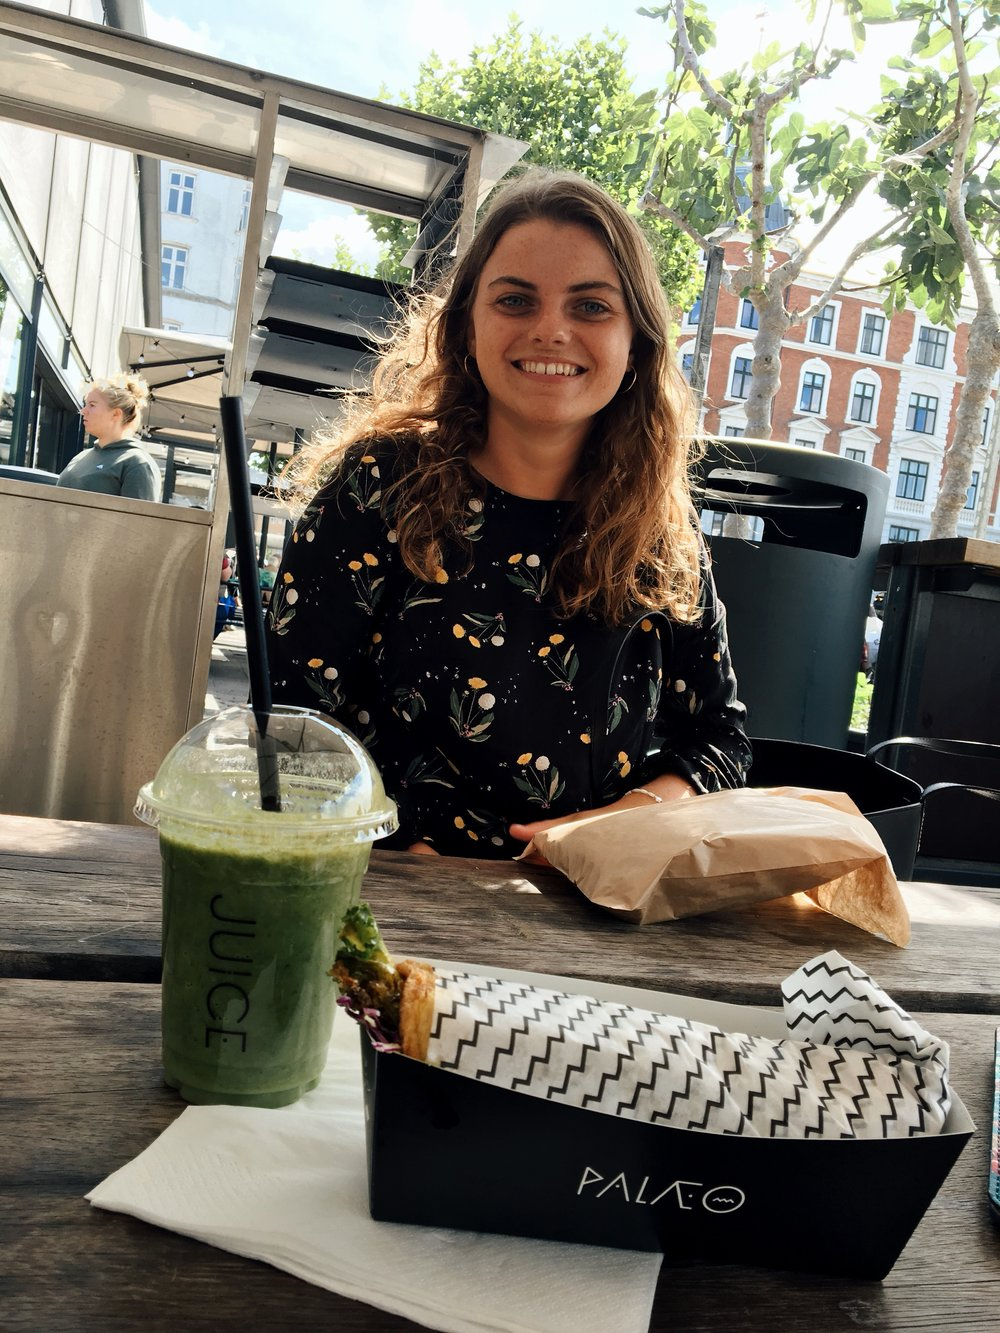 Lunch at Torvehallerne - paleo sweet potato, kale wrap and a green smoothie. NOMS